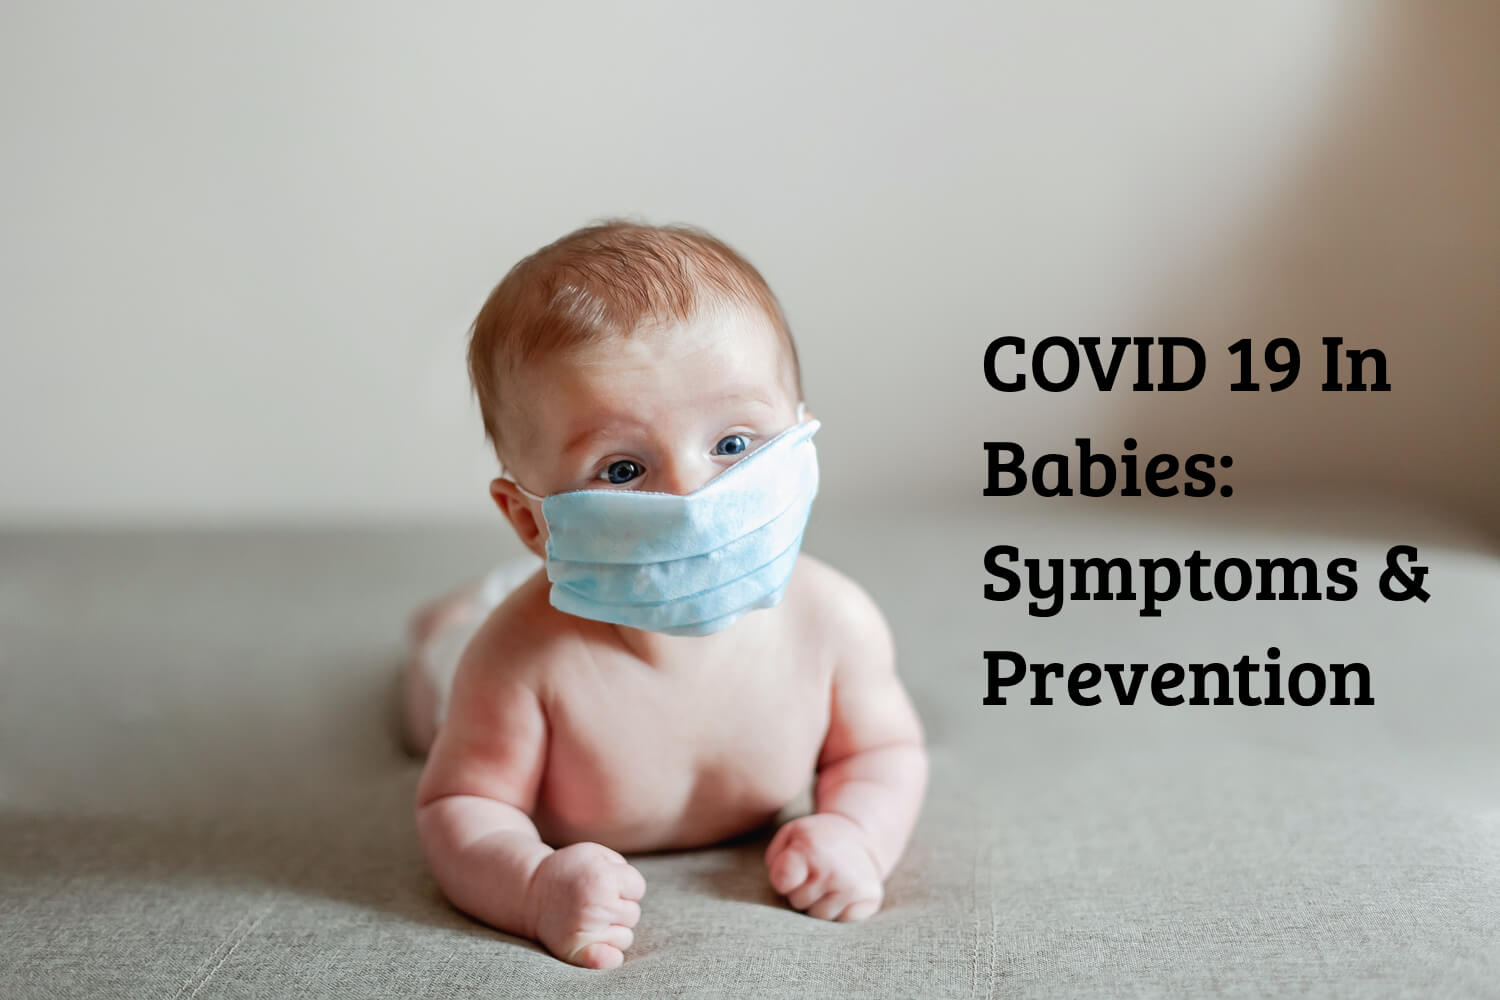 COVID 19 In Babies: Symptoms & Prevention